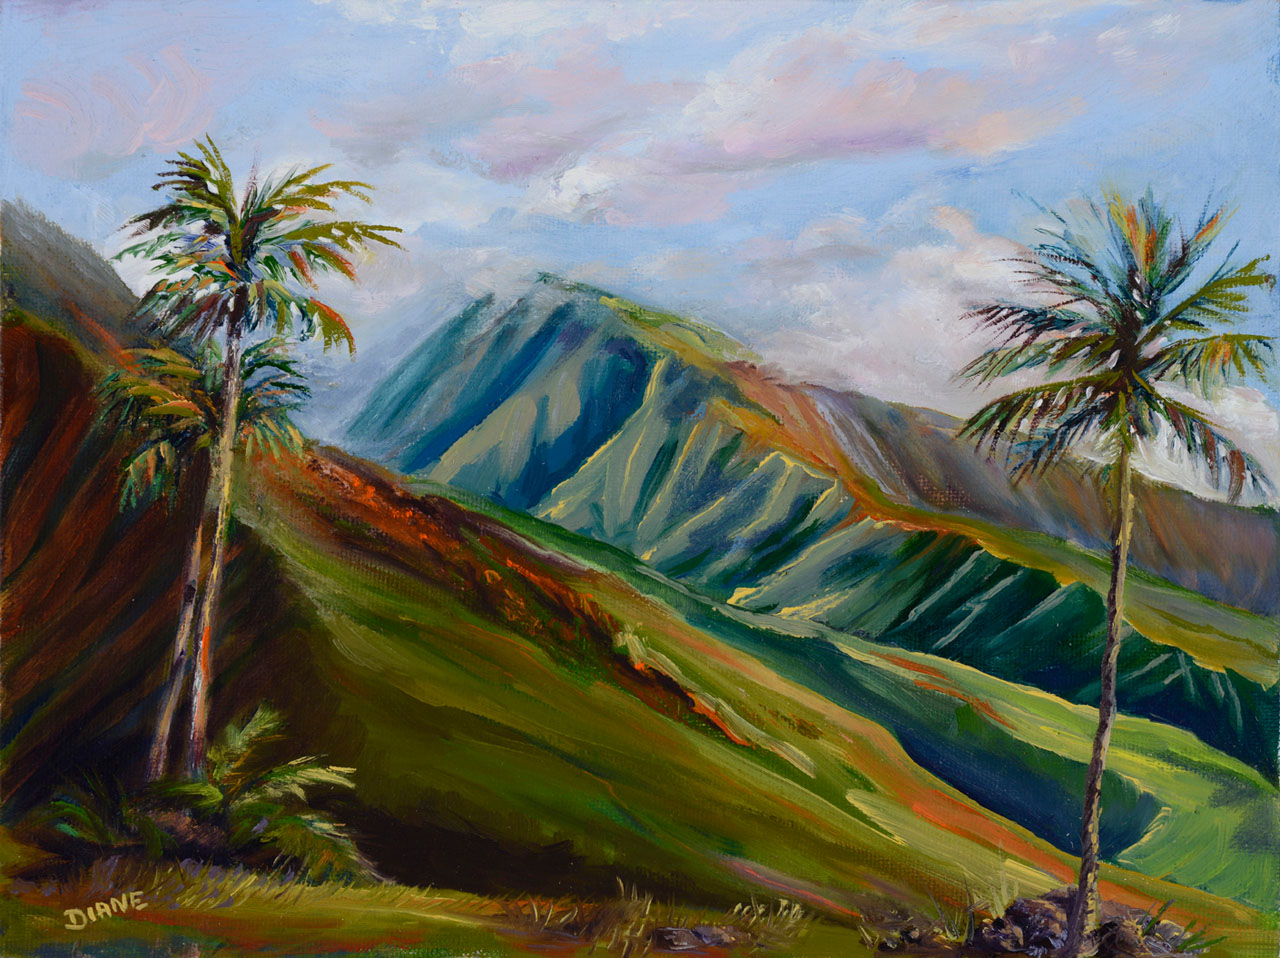 Evening Coming Lahaina 9 x 12 Print on watercolor paper Diane Snoey Appler